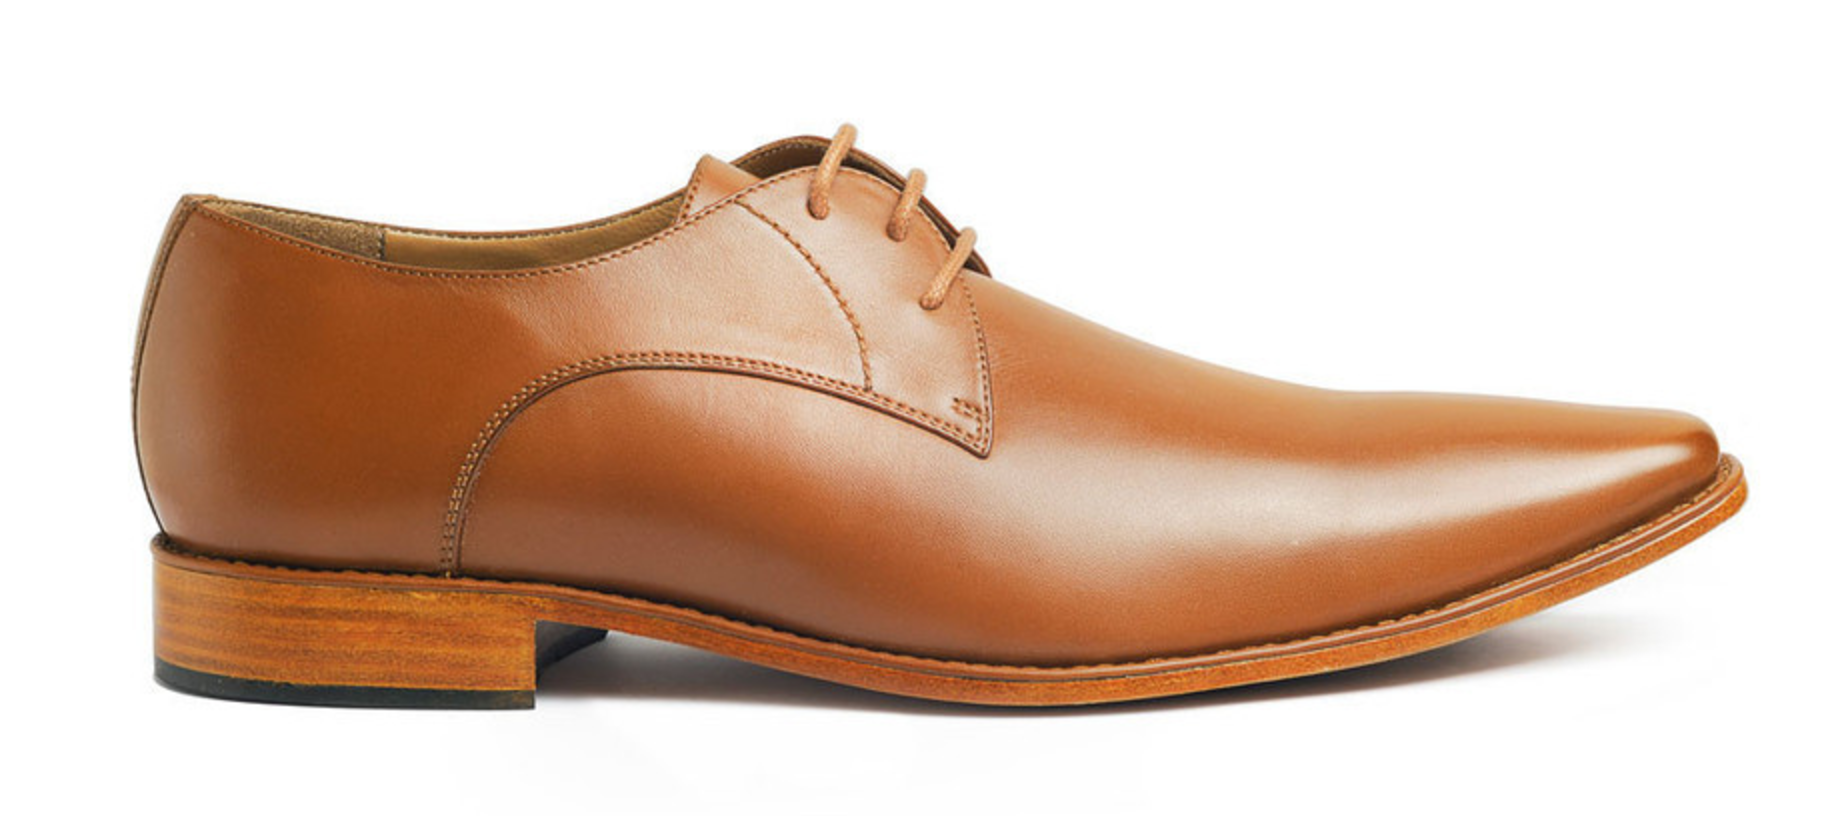 English Leather Shoes